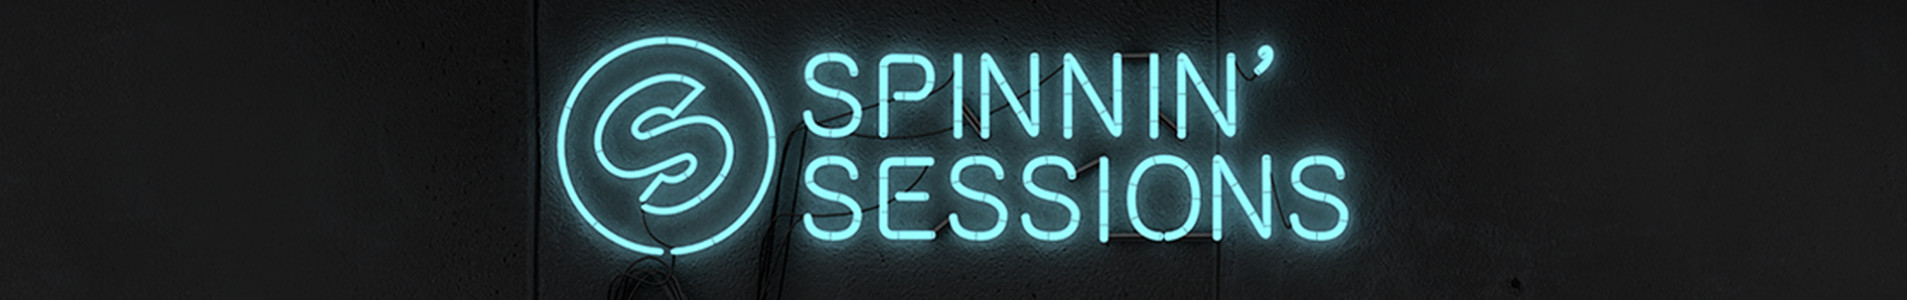 New update for Spinnin' Sessions radio show